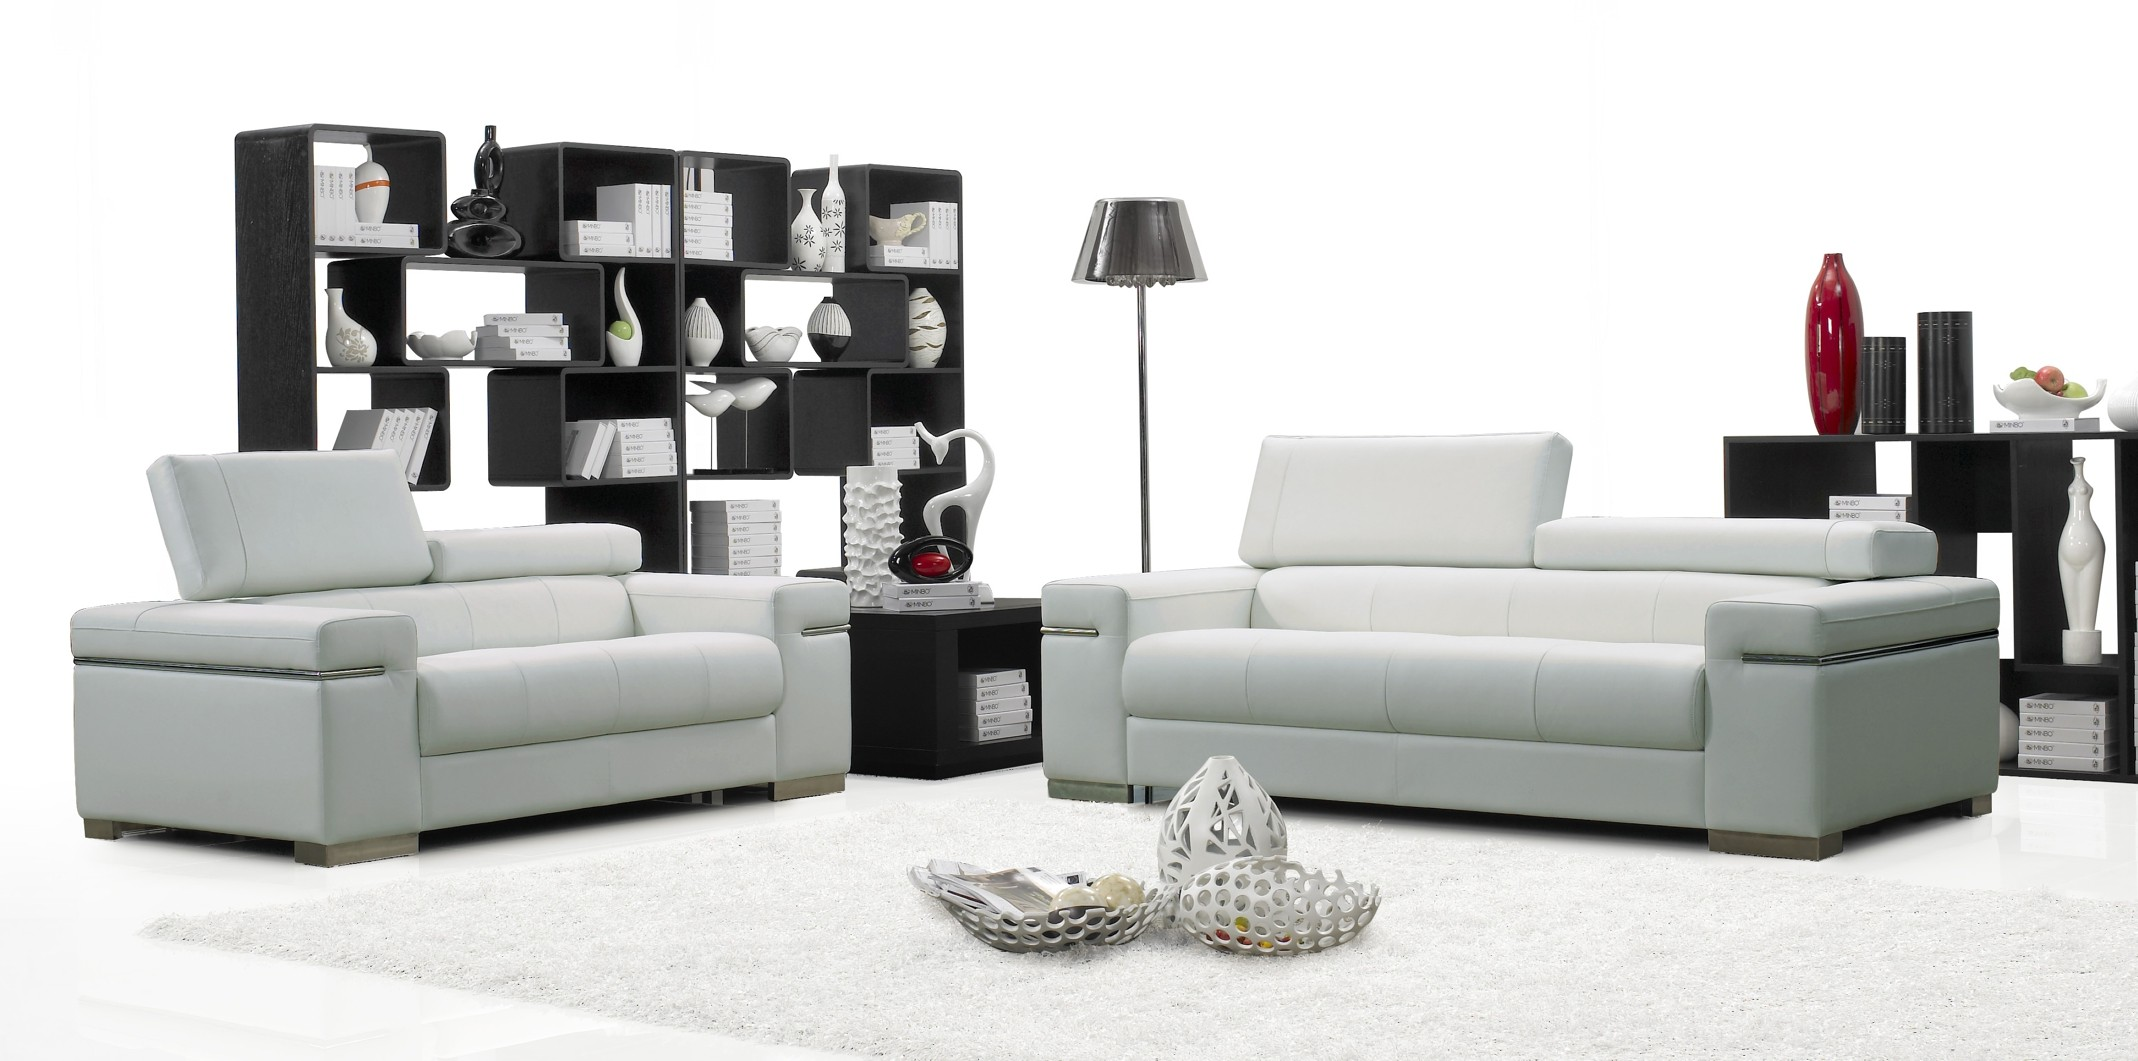 True modern furniture online homesfeed for Modern furniture design